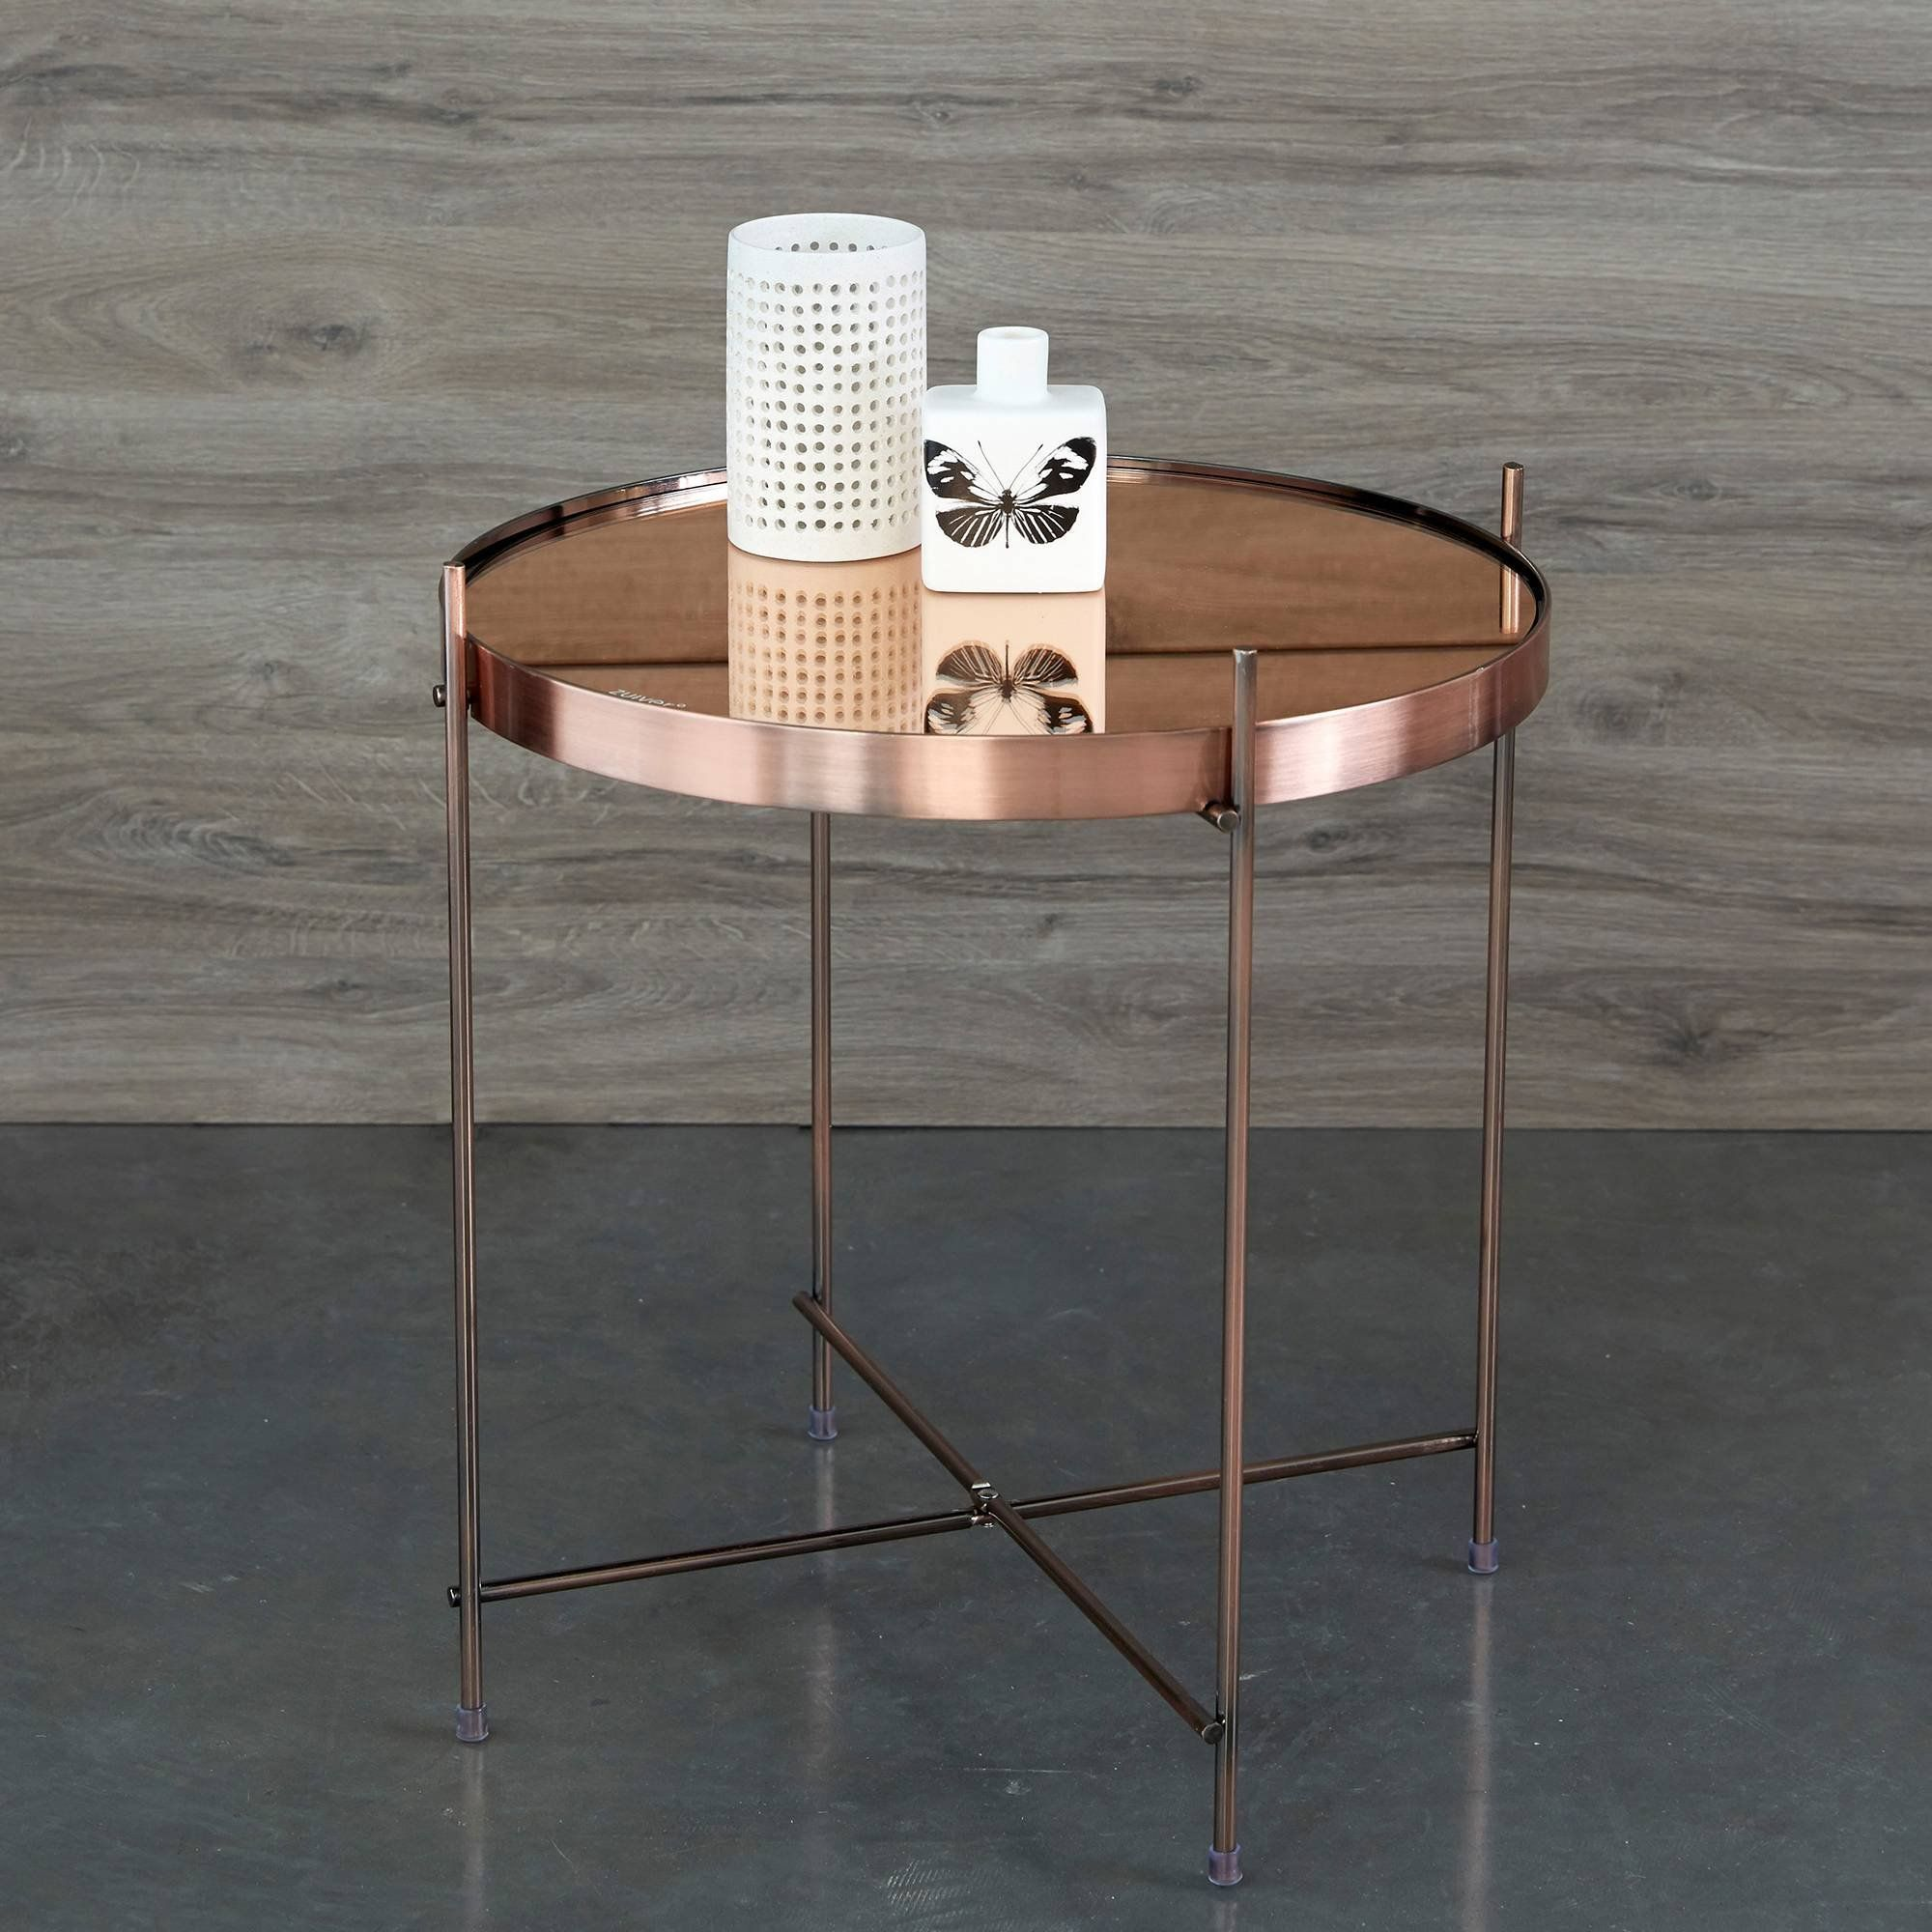 Table Basse Gueridon Metal Plateau Miroir Cupid Zuiver 3suisses Gueridon Table De Chevet Metal Table Basse